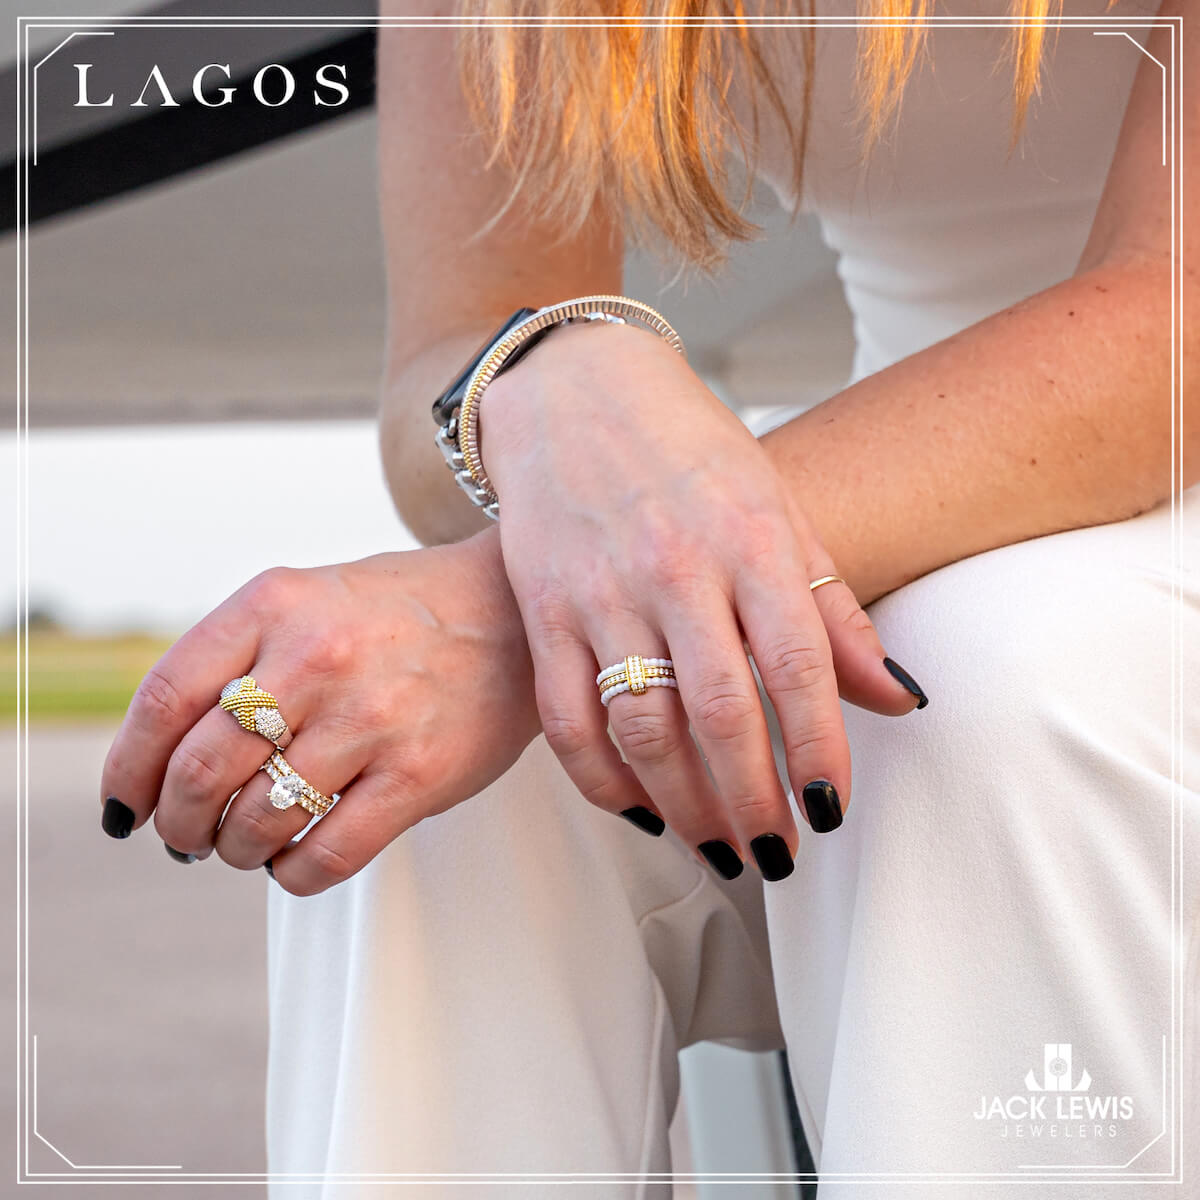 Close up photo of a young woman's hands crossed on top of her knees. She is wearing multiple rings, a bracelet and an Apple watch from the LAGO collection.